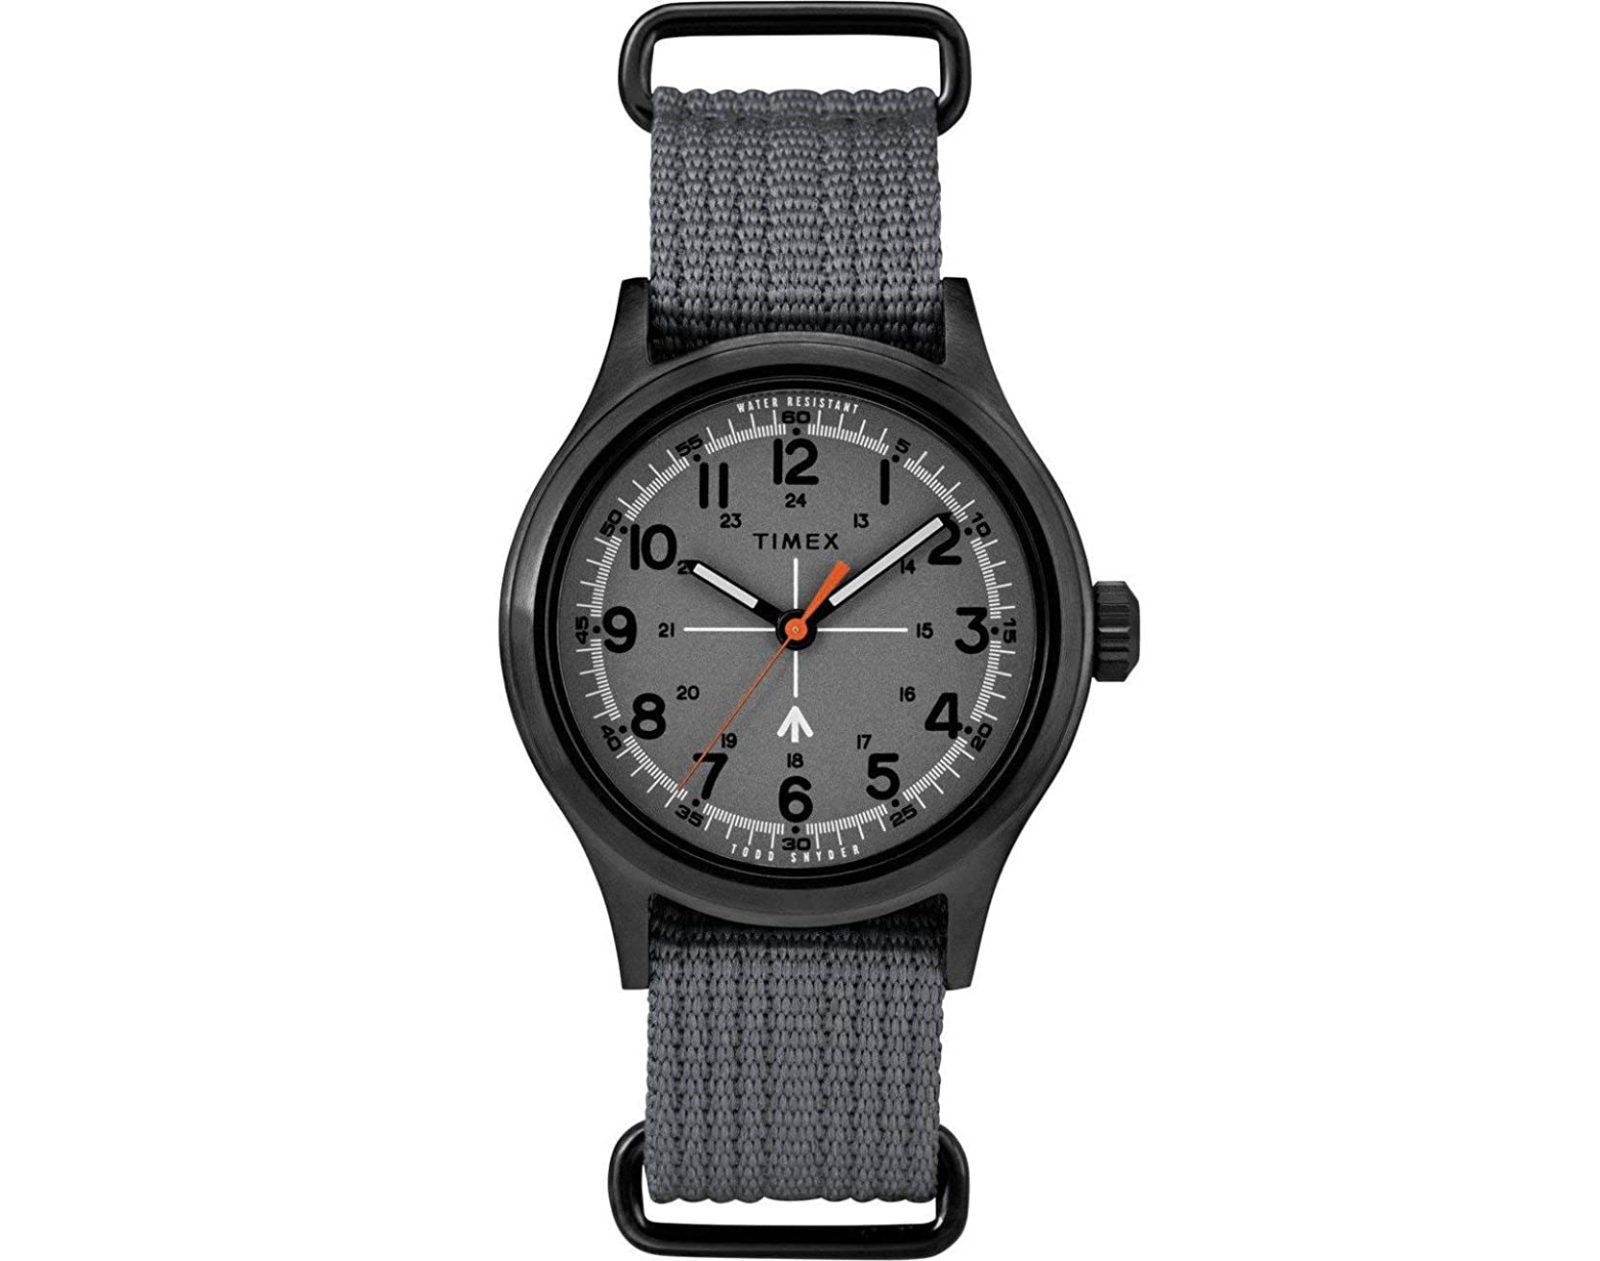 TIMEX+TODD SNYDER THE MILITARY WATCH